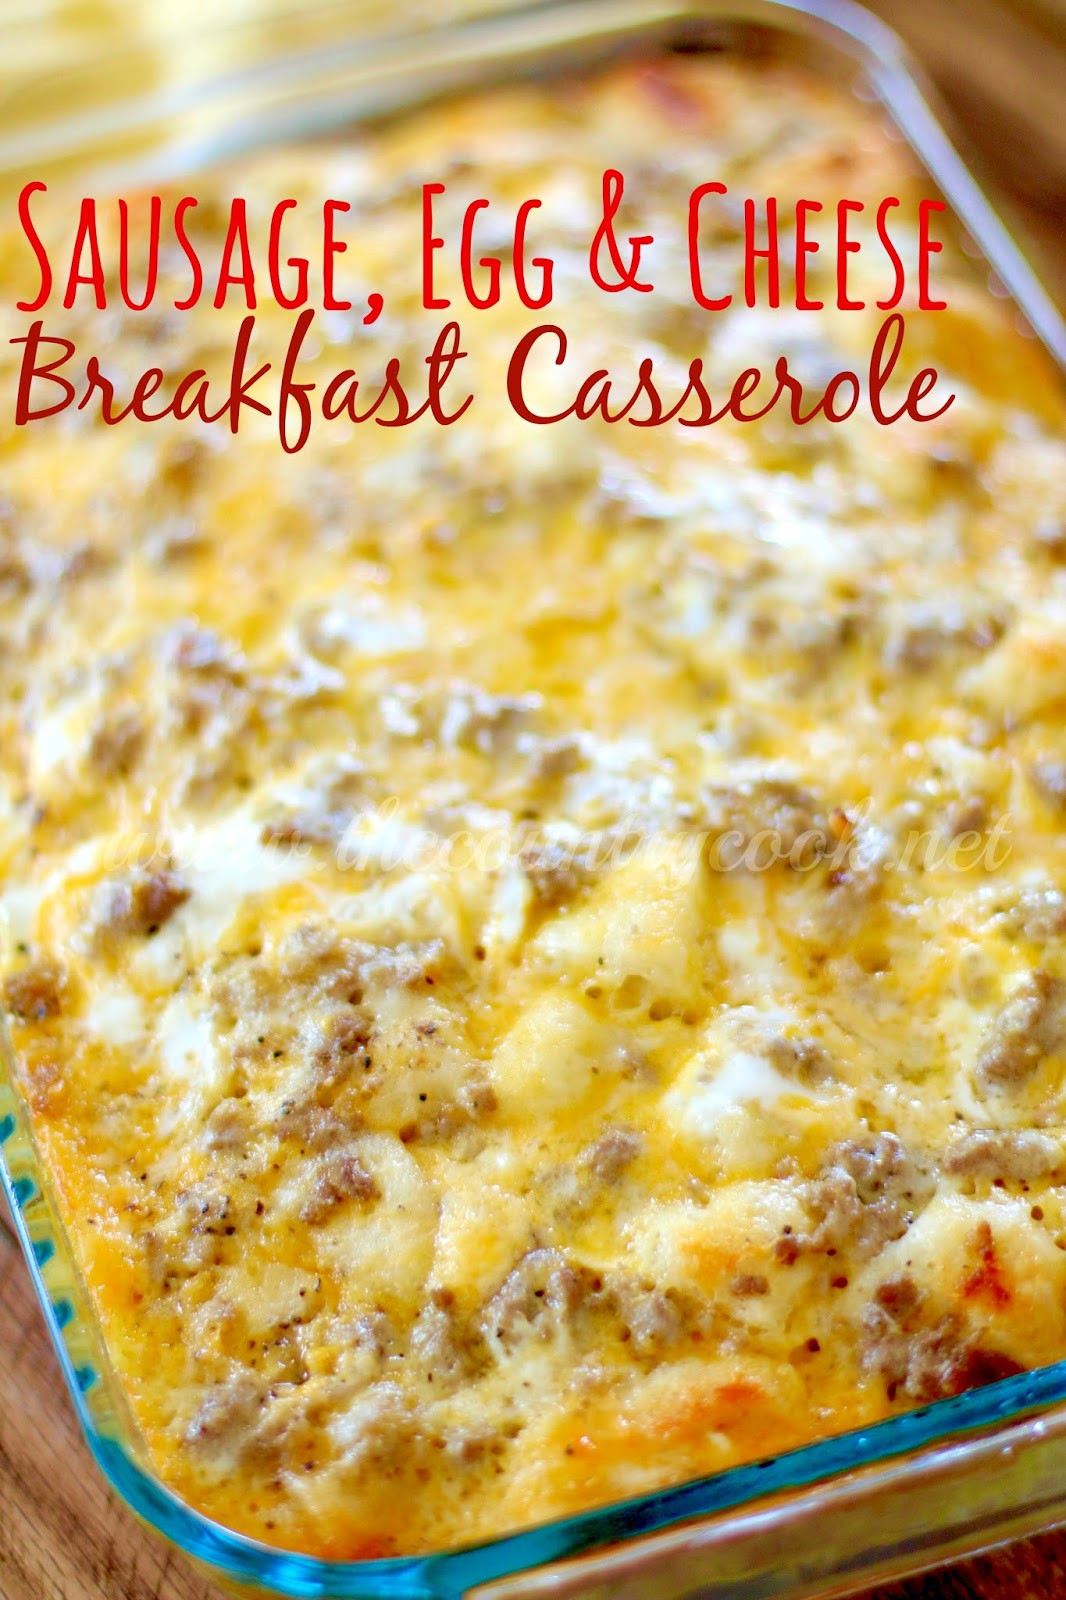 Sausage Biscuit Casserole  Sausage Egg & Cheese Biscuit Casserole The Country Cook